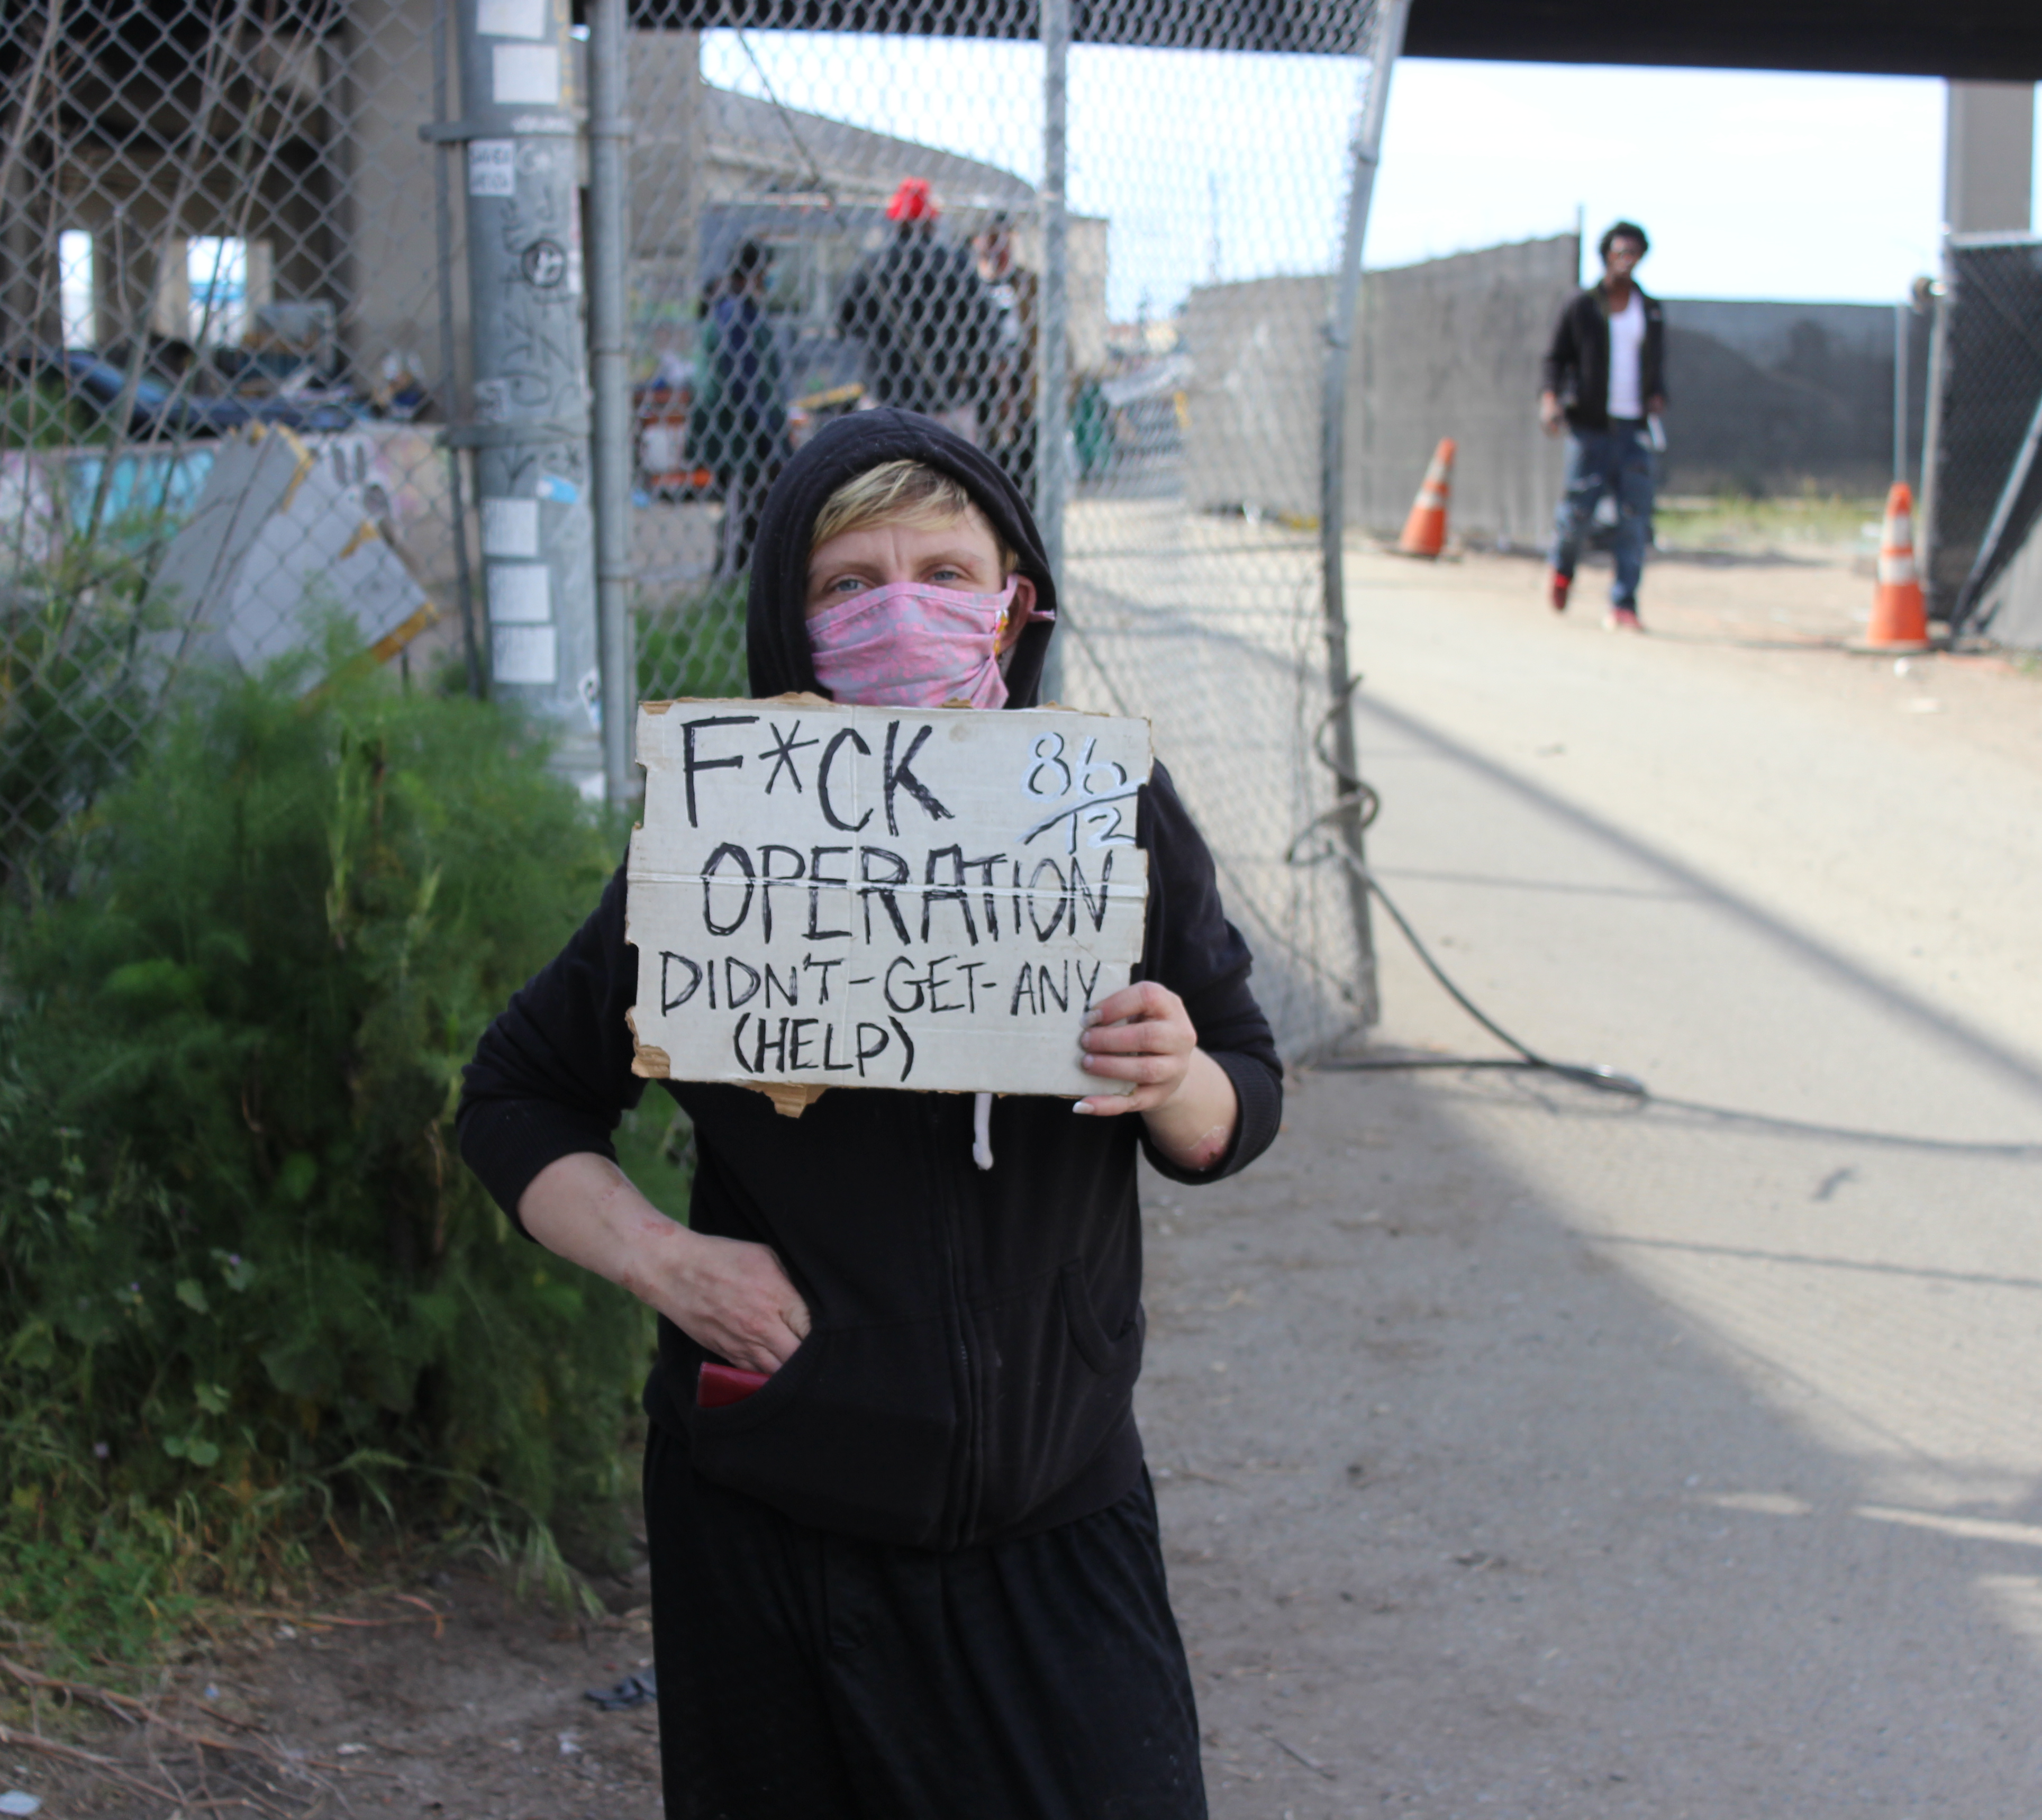 Jessica Bailey, who is unhoused, poses at Wood St, where she currently lives, with a sign she brought to the protest outside of Mayor Libby Schaaf's home on Monday. Her sign criticizes Operation Dignity, the non-profit who has contracted with the city of Oakland to run the Tuff Shed site that Baily lived in for over three months. Photo by Zack Haber.